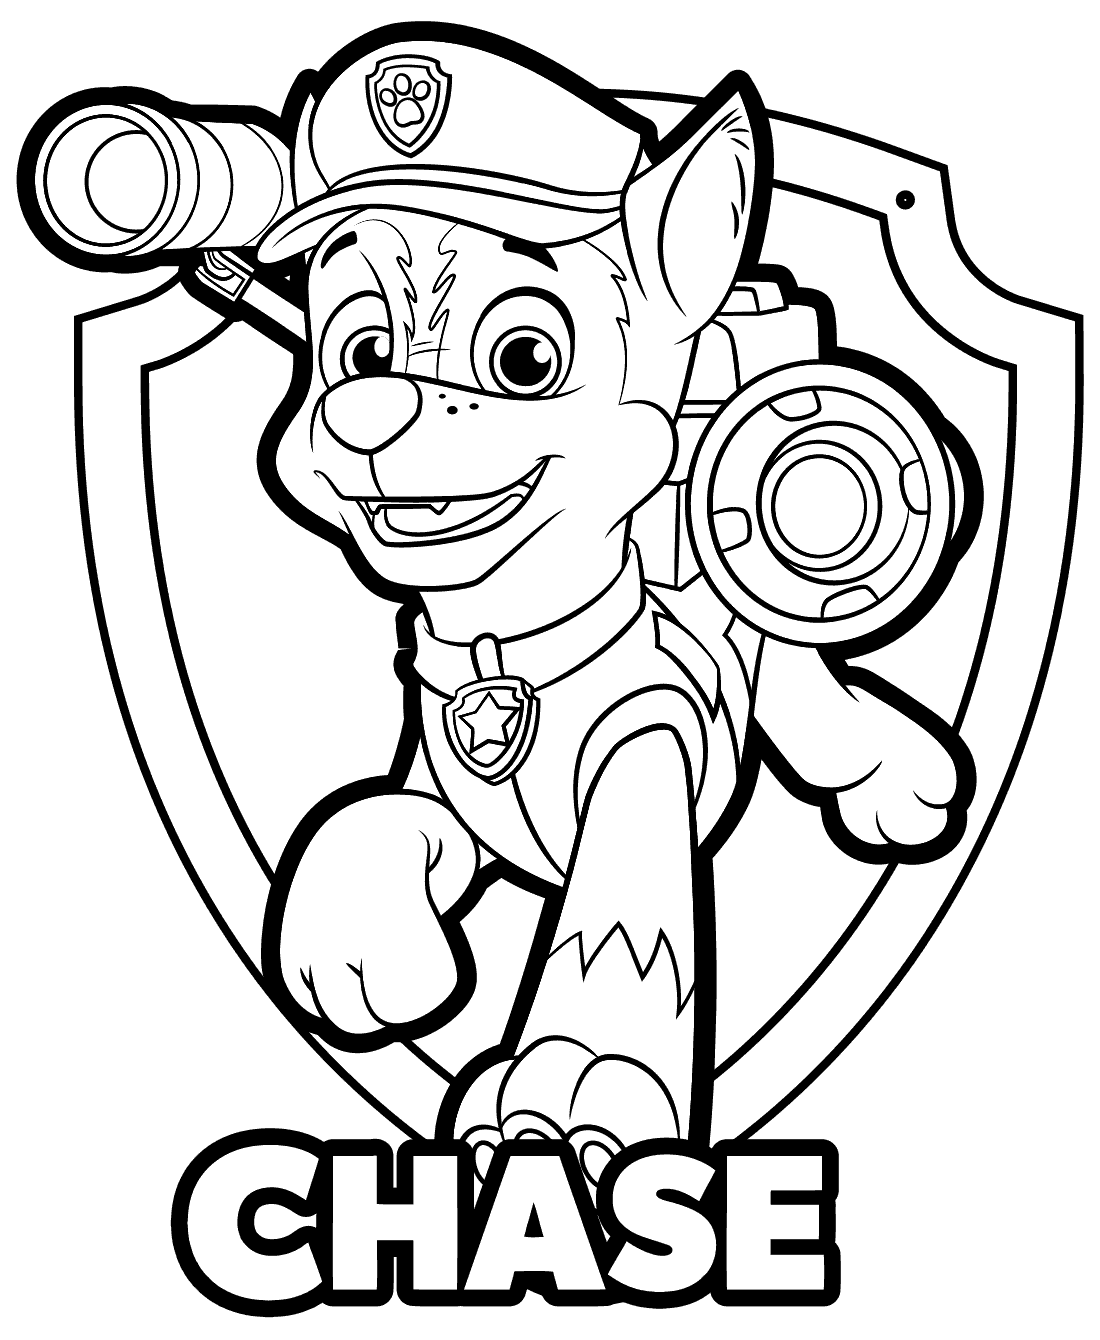 paw patrol coloring page paw patrol coloring pages marshall underwater get coloring paw page patrol